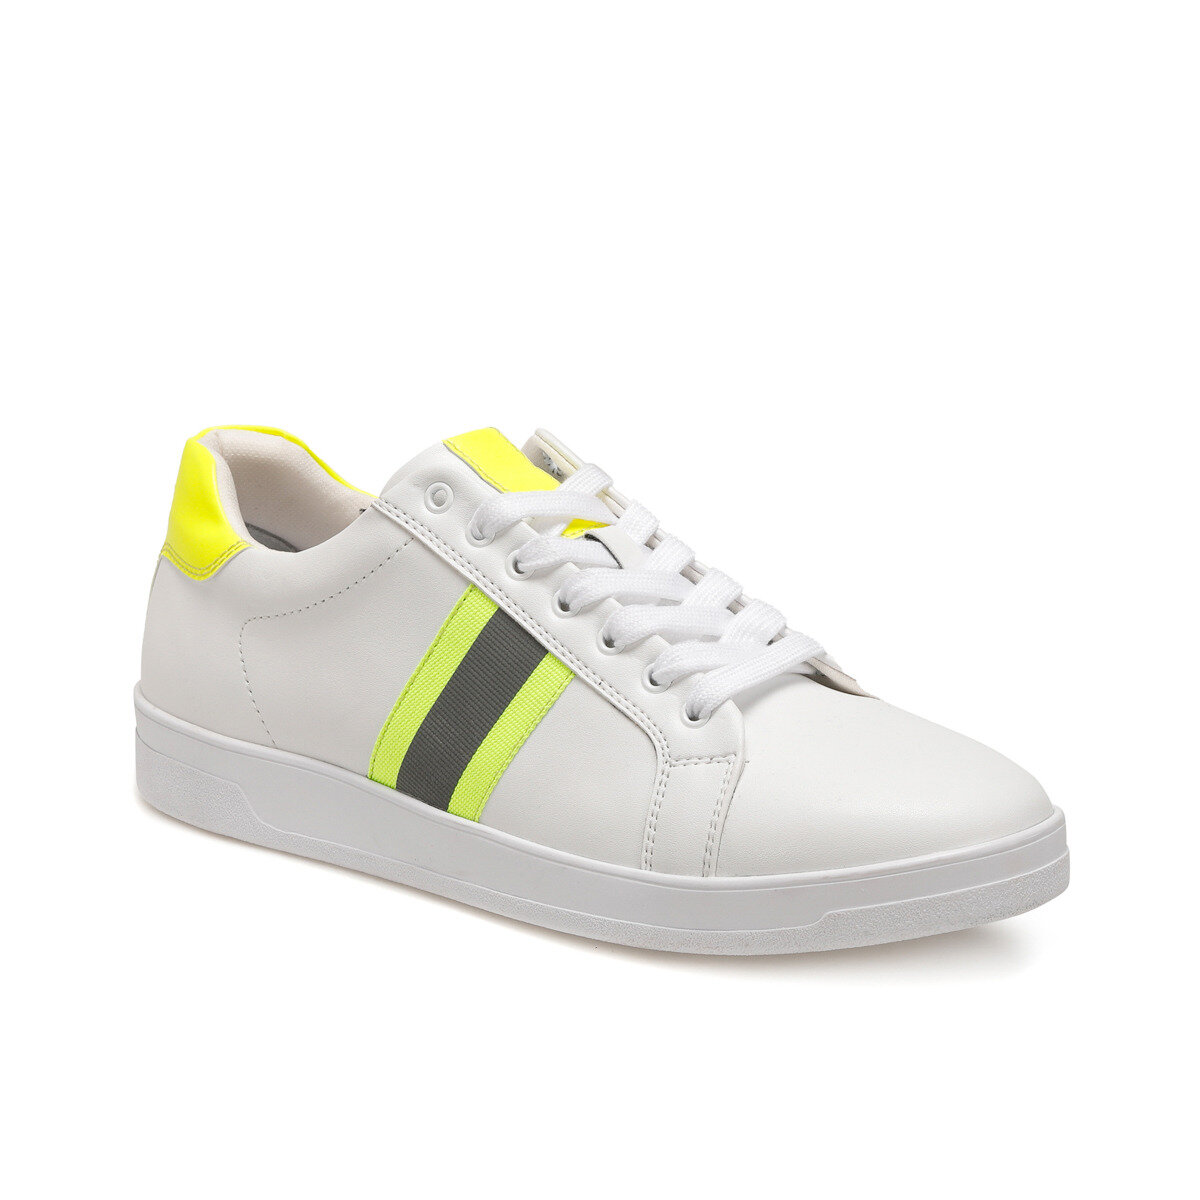 FLO HT401 Neon Yellow Men 'S Sneaker Forester